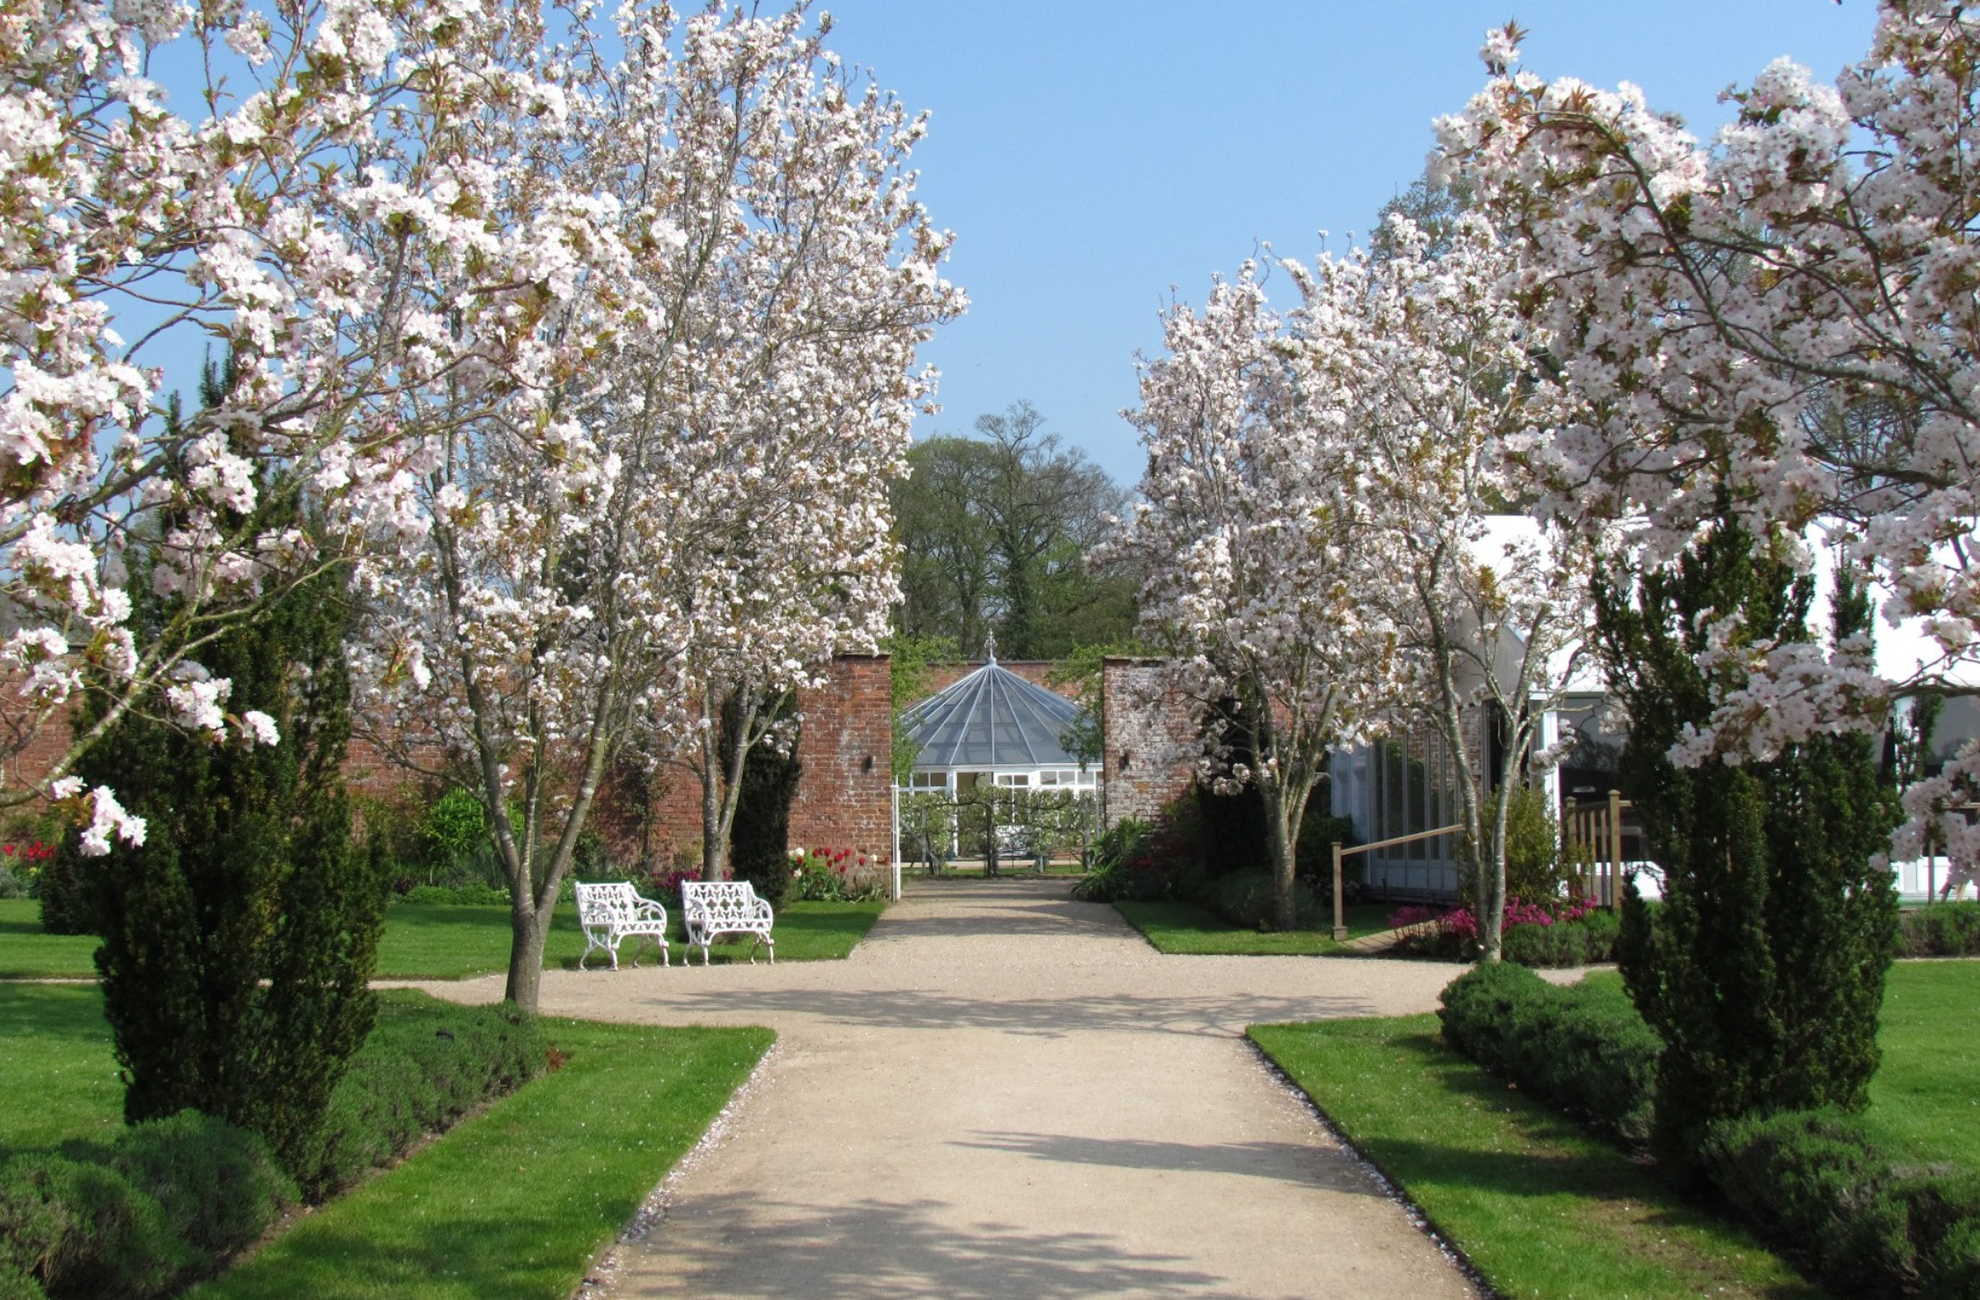 Large blossom trees look beautiful in the gardens at Combermere Abbey in the spring time